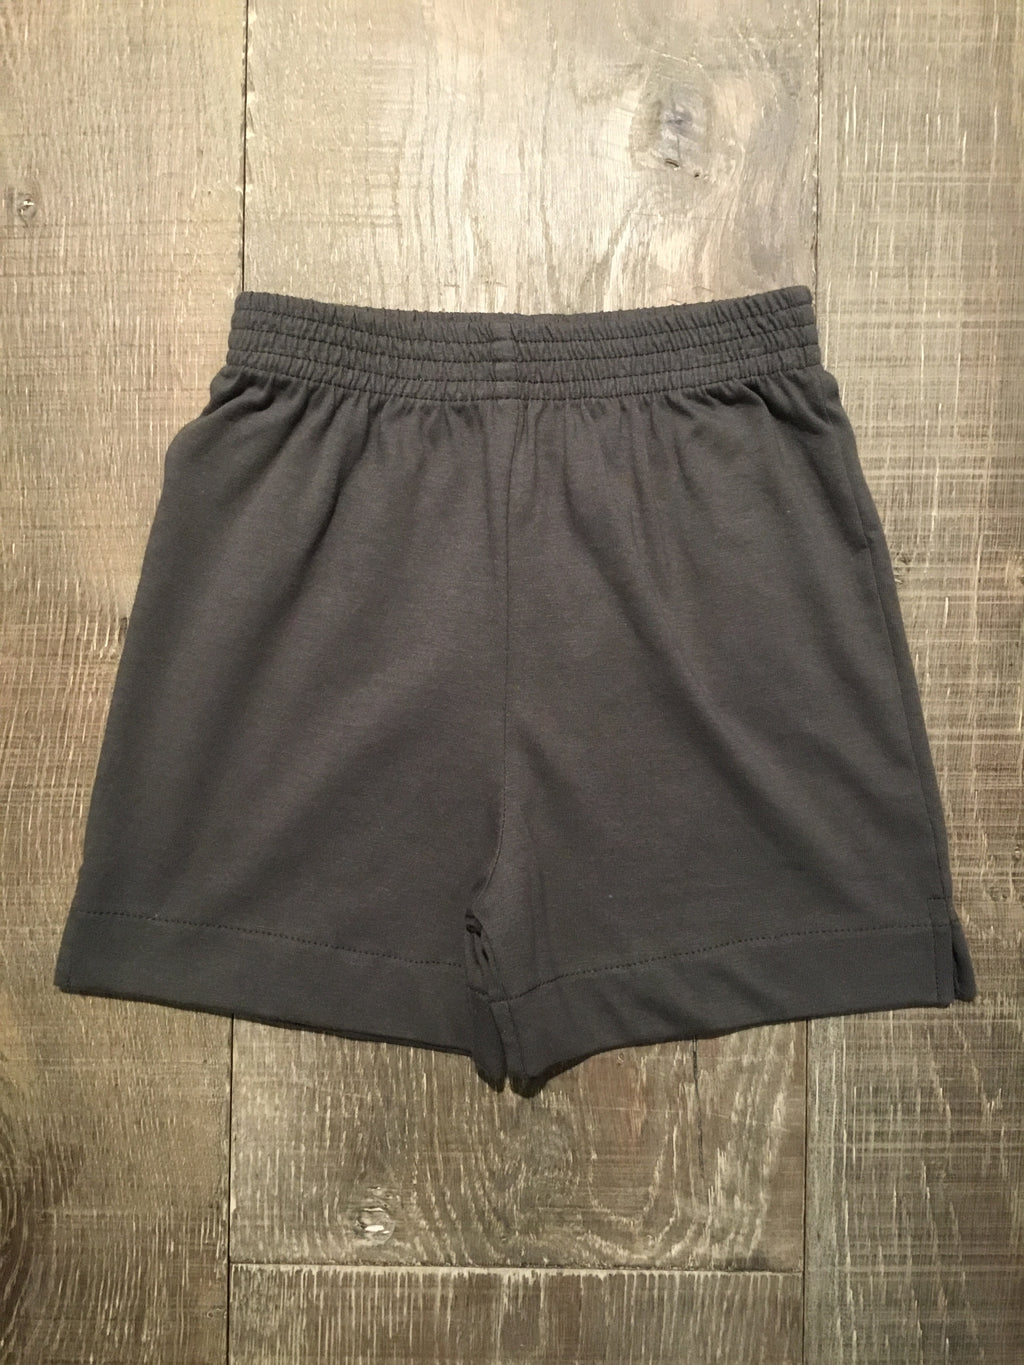 Charcoal Jersey Knit Shorts by Luigi Kids